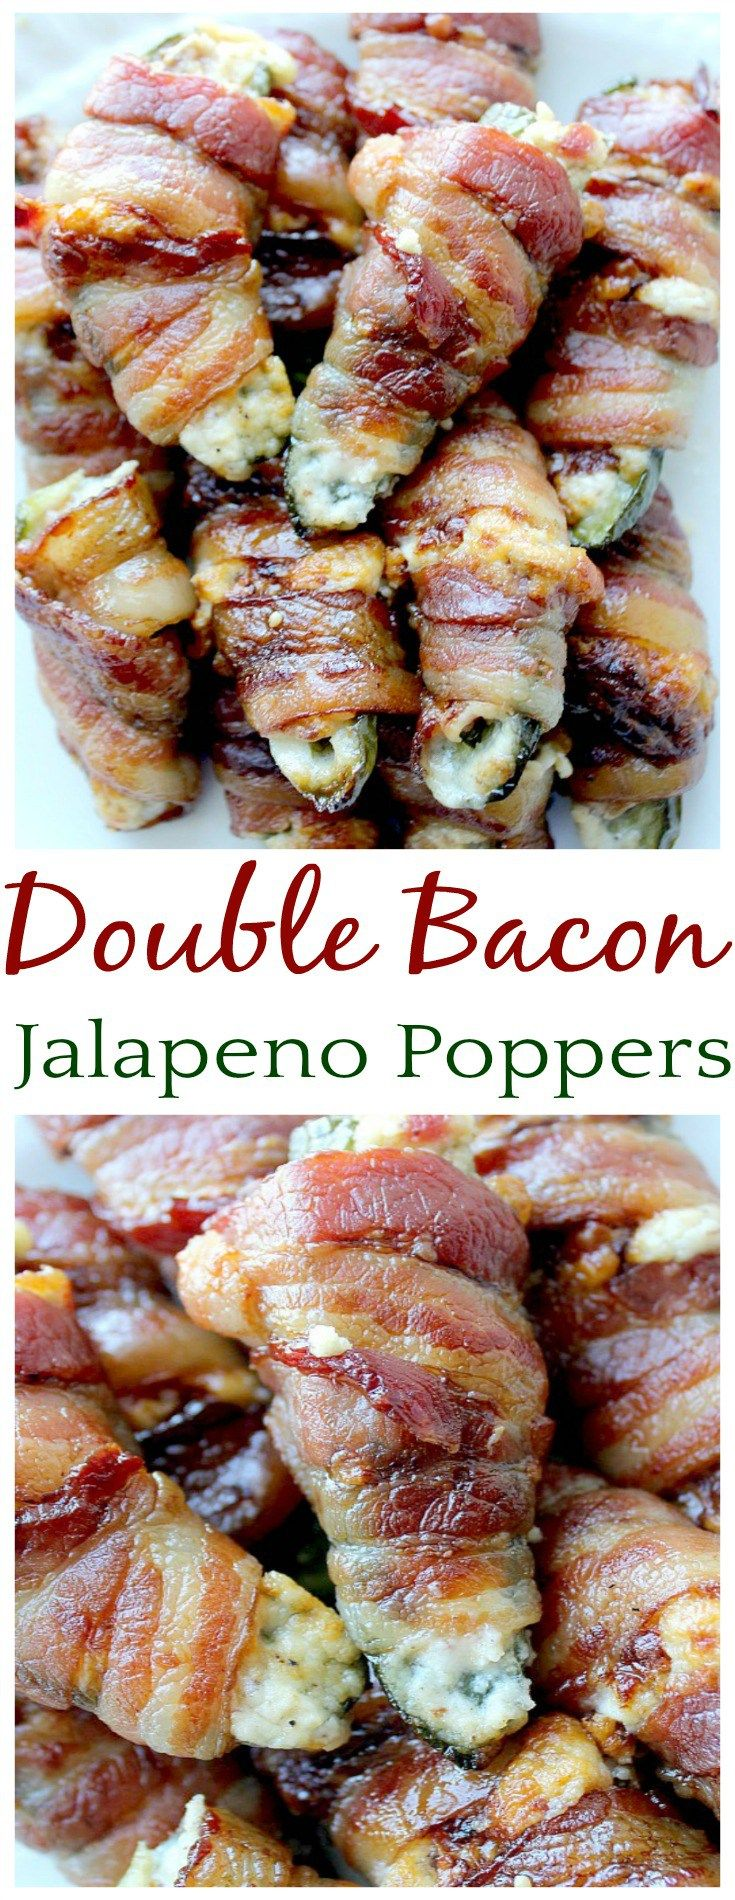 These Double Bacon Jalapeno Poppers made the perfect appetizer recipe! I can see them being the perfect tailgating recipe too! Bacon isn't just wrapped around the outside..it's in the filling too! Because you really can't have too much bacon, can you?!?